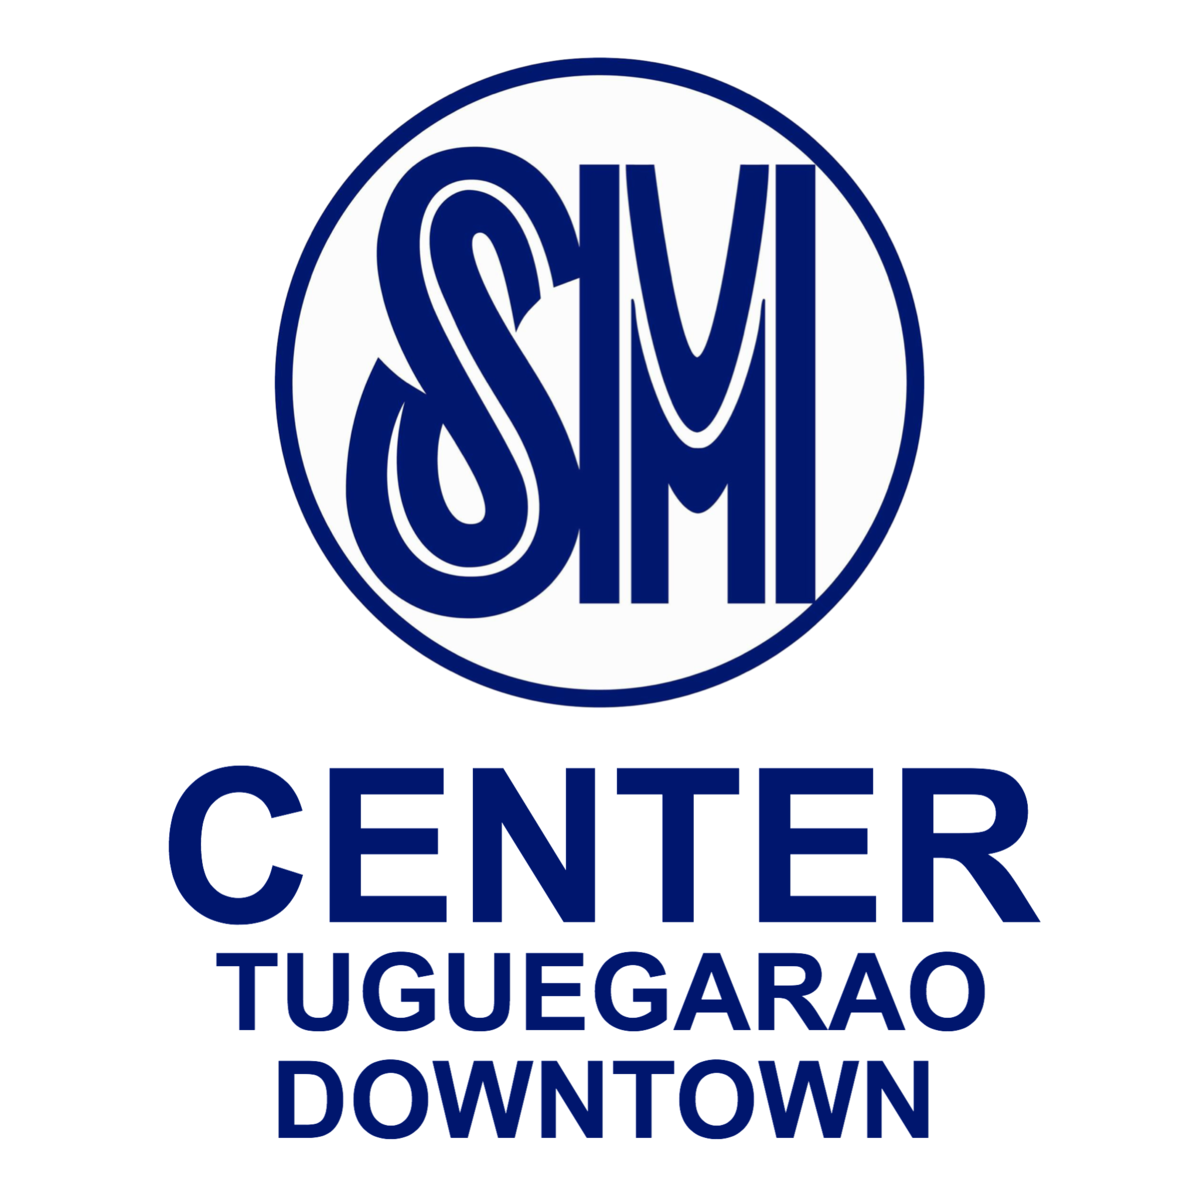 File:SM Center Tuguegarao Downtown logo 2.png.